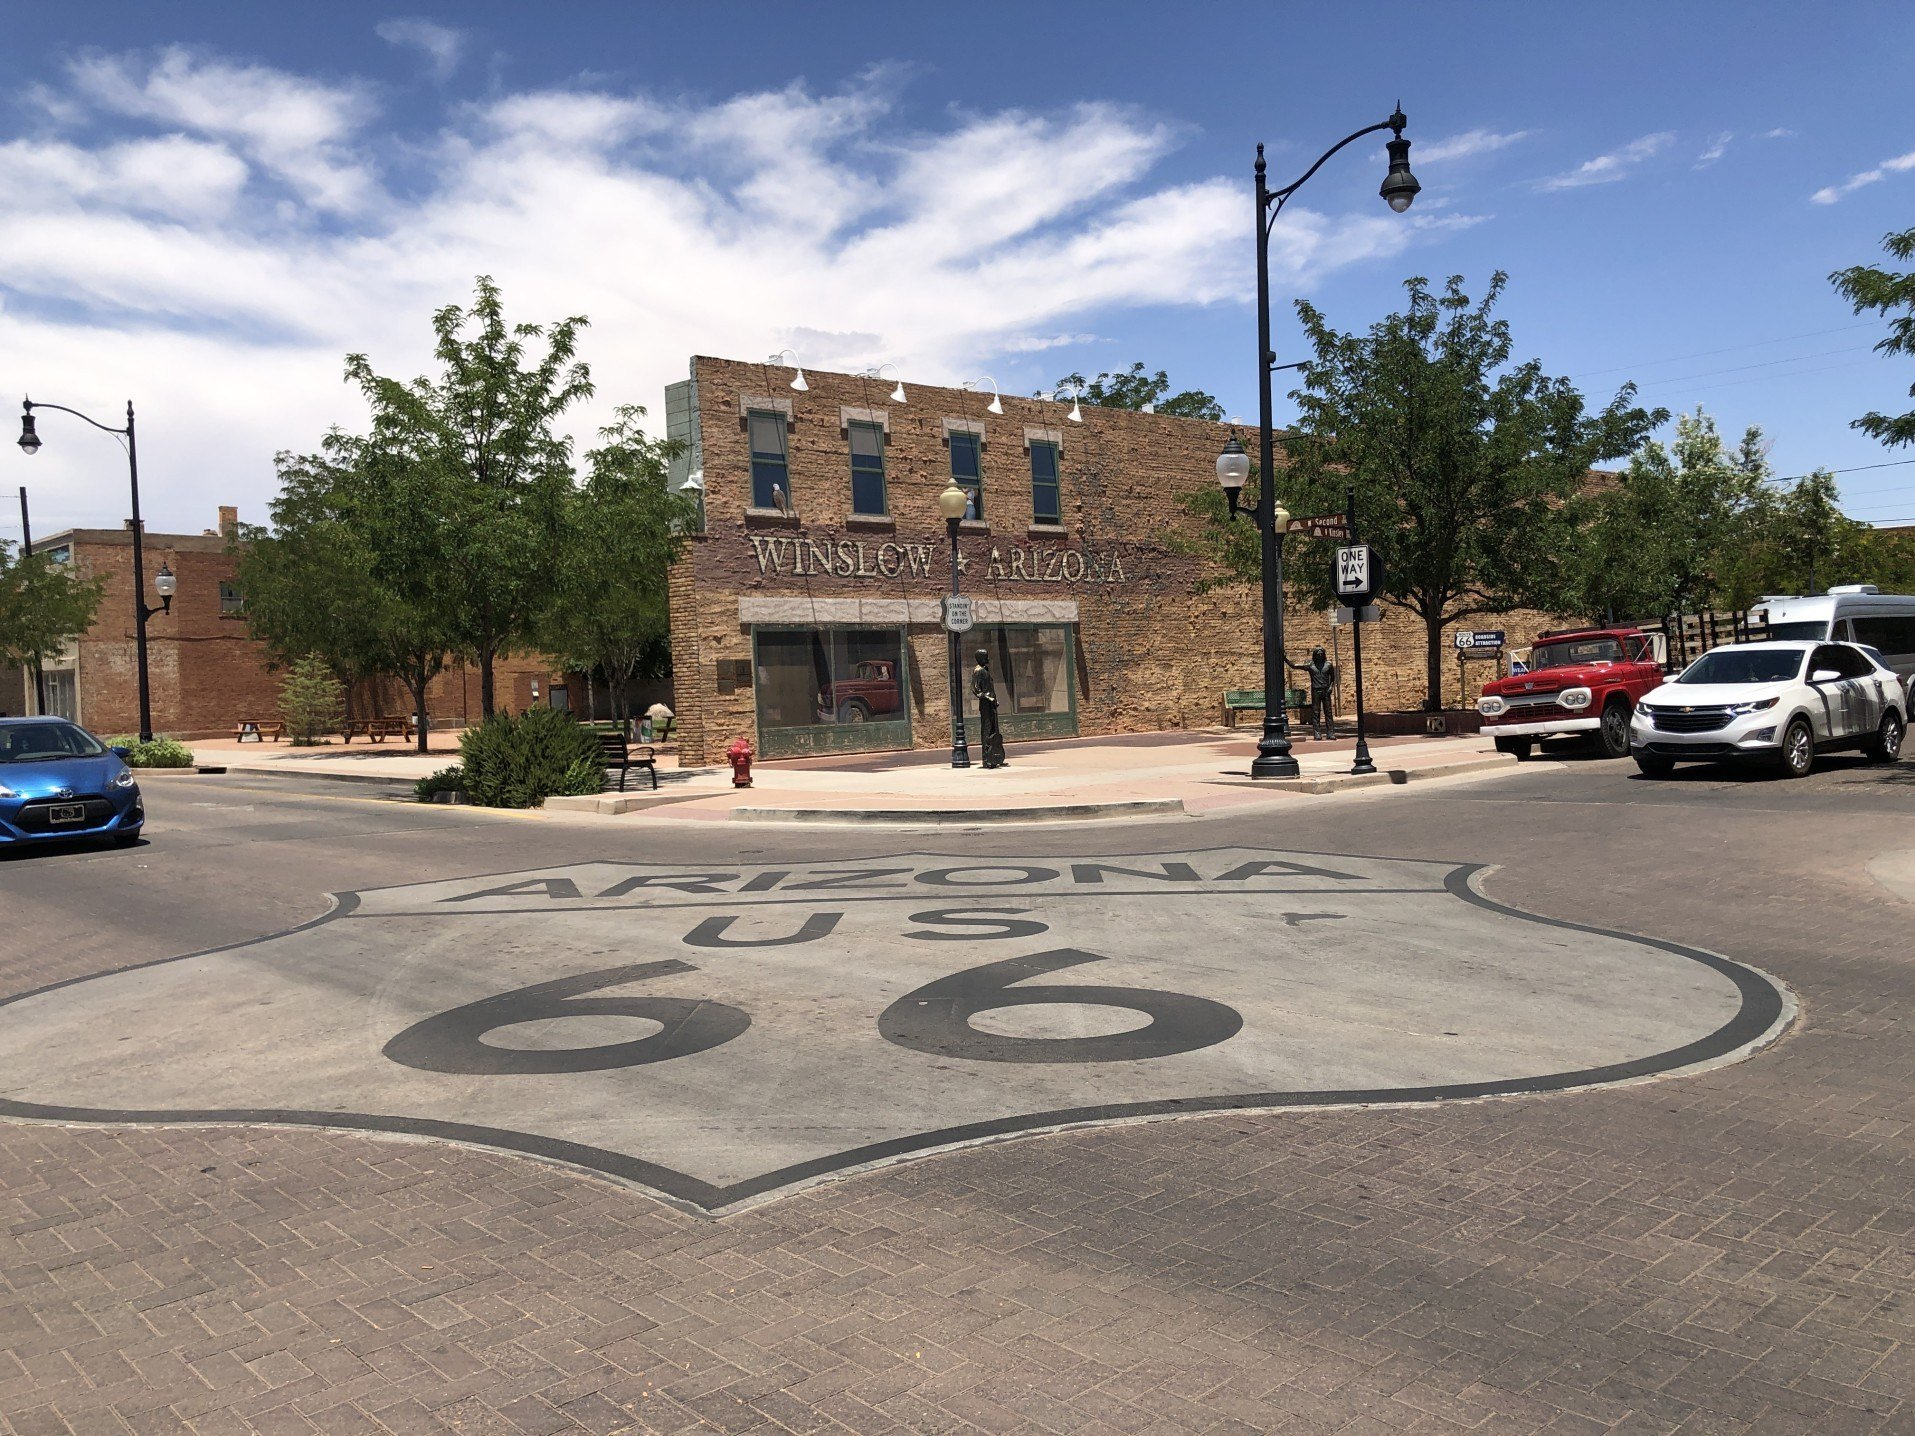 How to Spend a Day in Winslow, Arizona